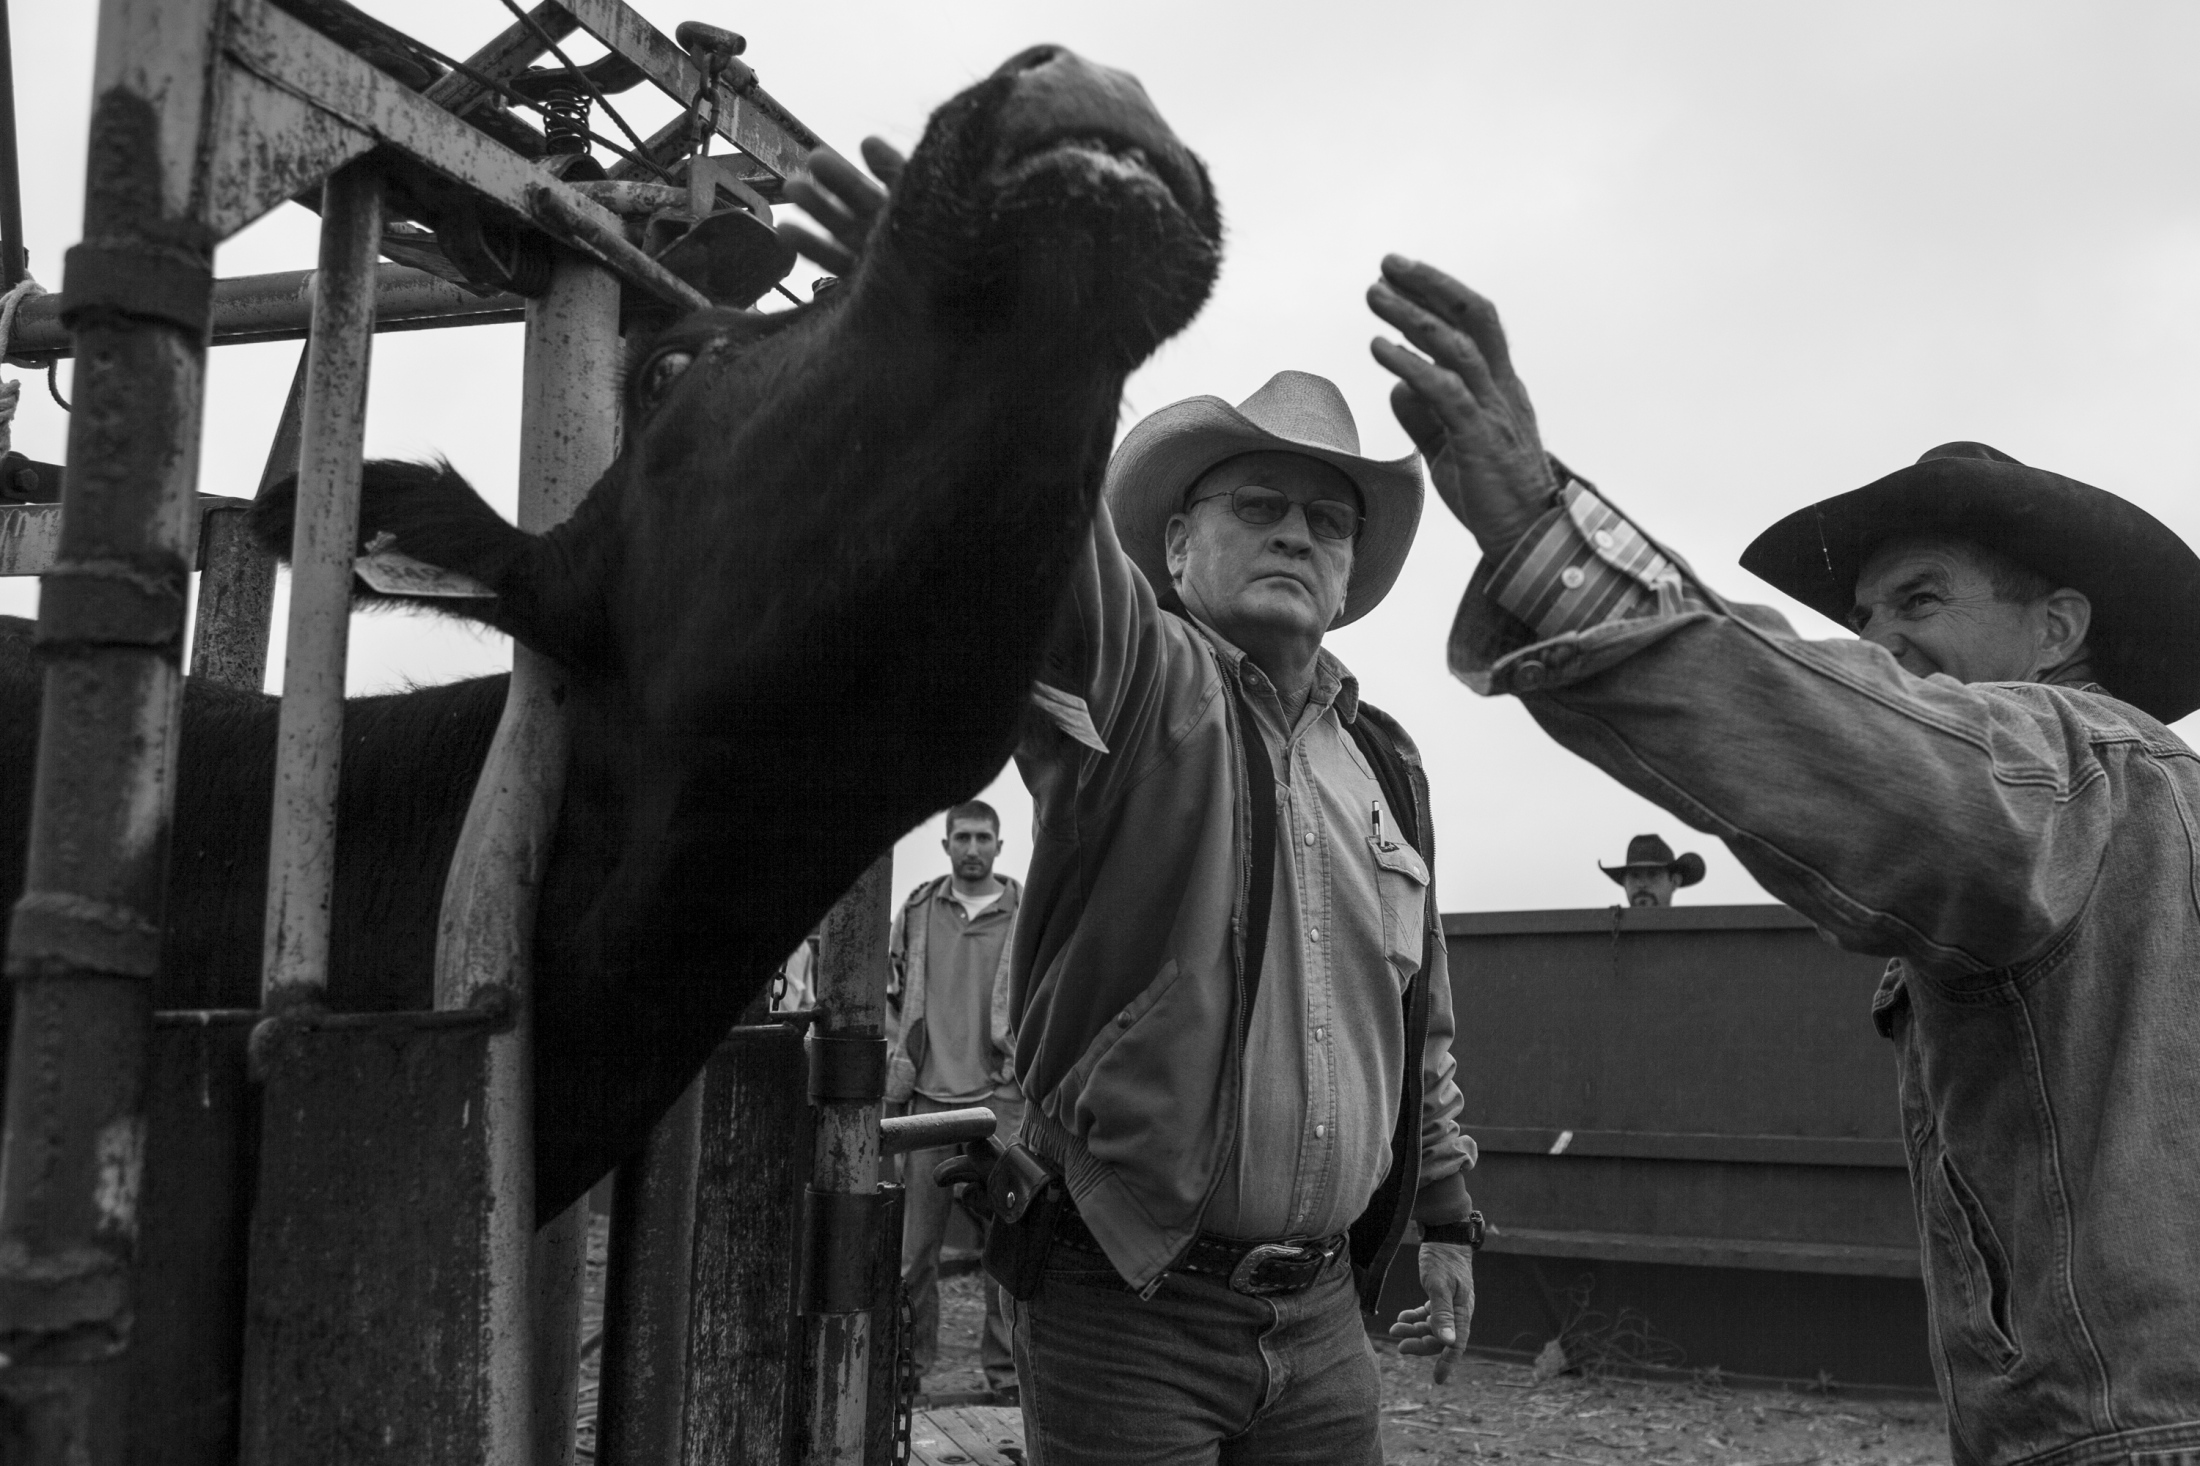 Windell Treadway and Ethan Fuchs inspect each cow before the new buyer arrives to pick up the cattle.